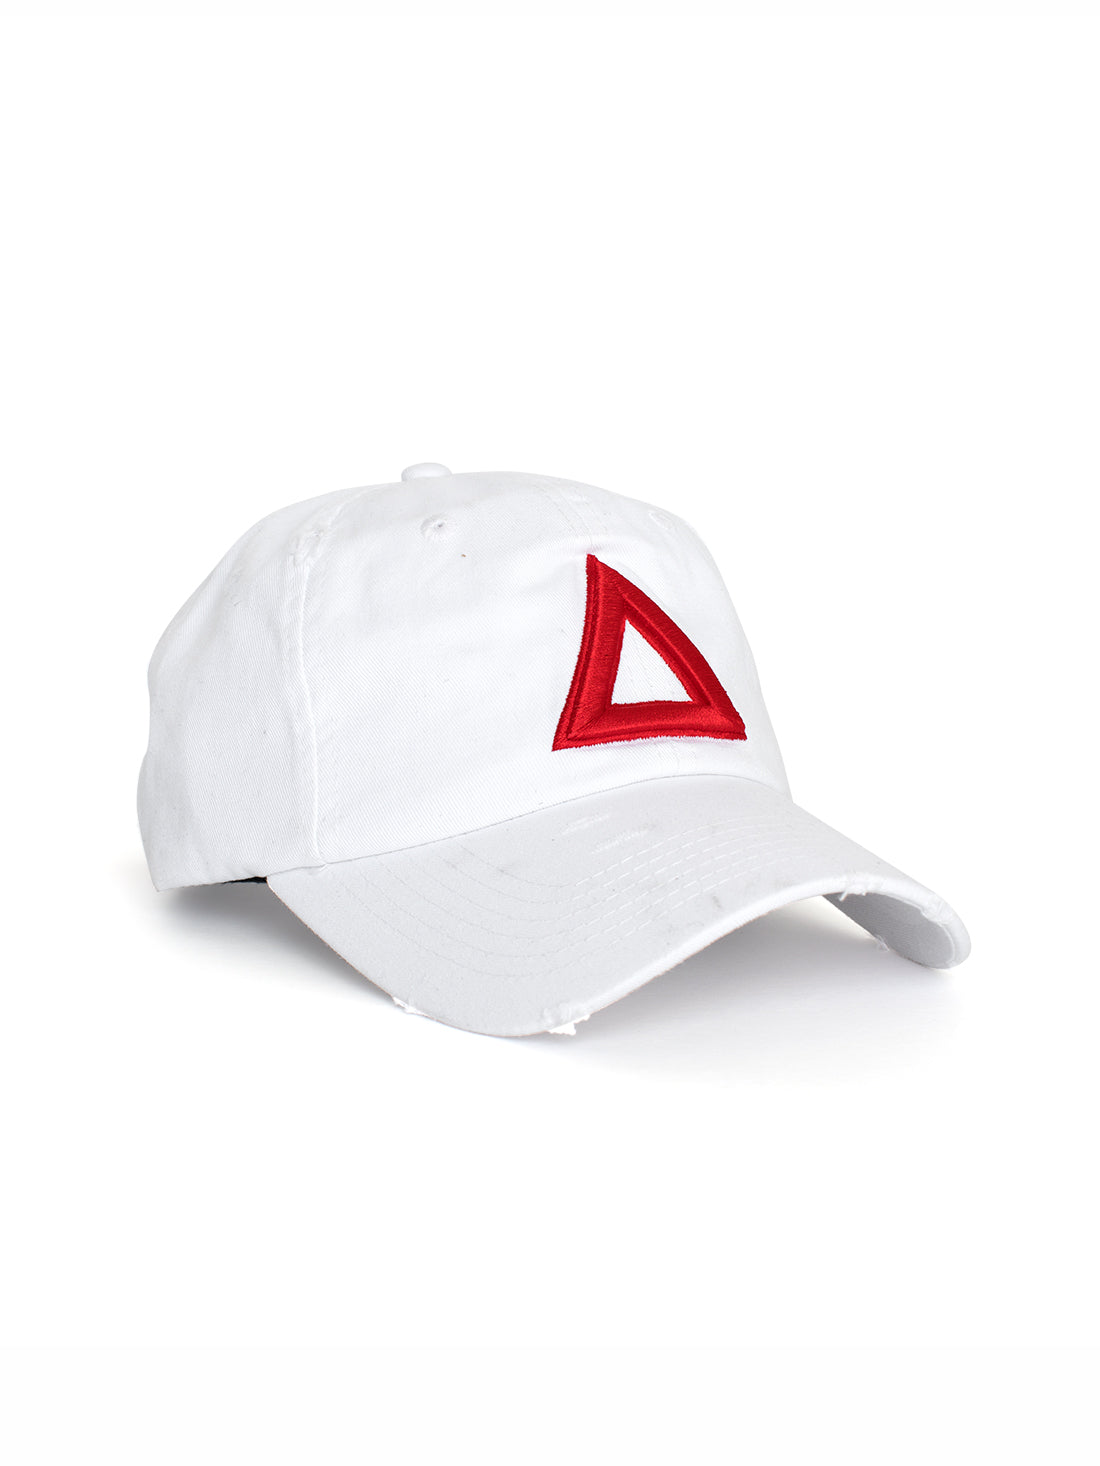 DISTRESS DAD HAT WHITE  - RED TRI